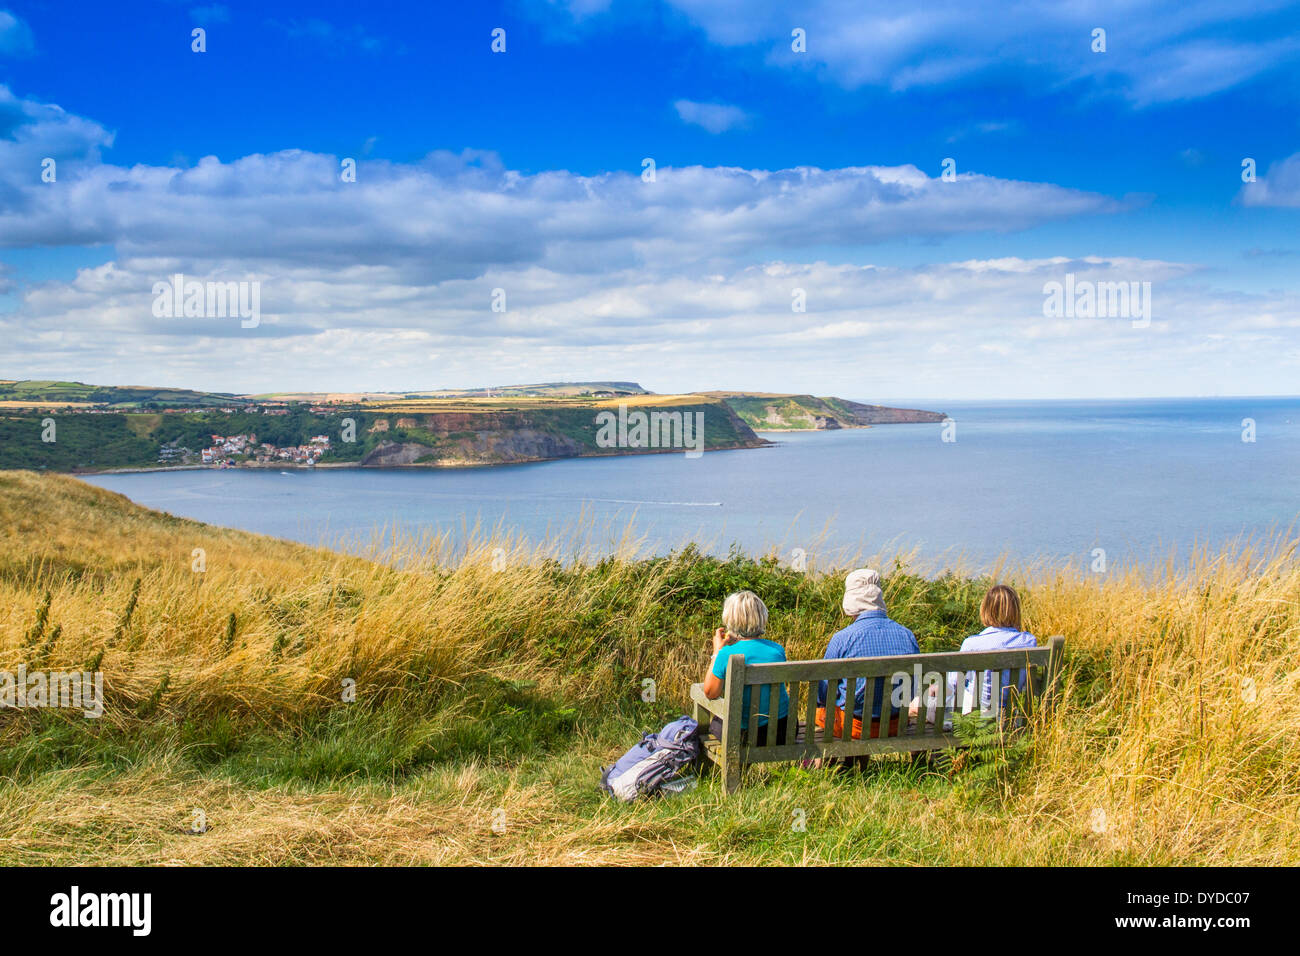 Enjoying a sea view on a summers day. - Stock Image